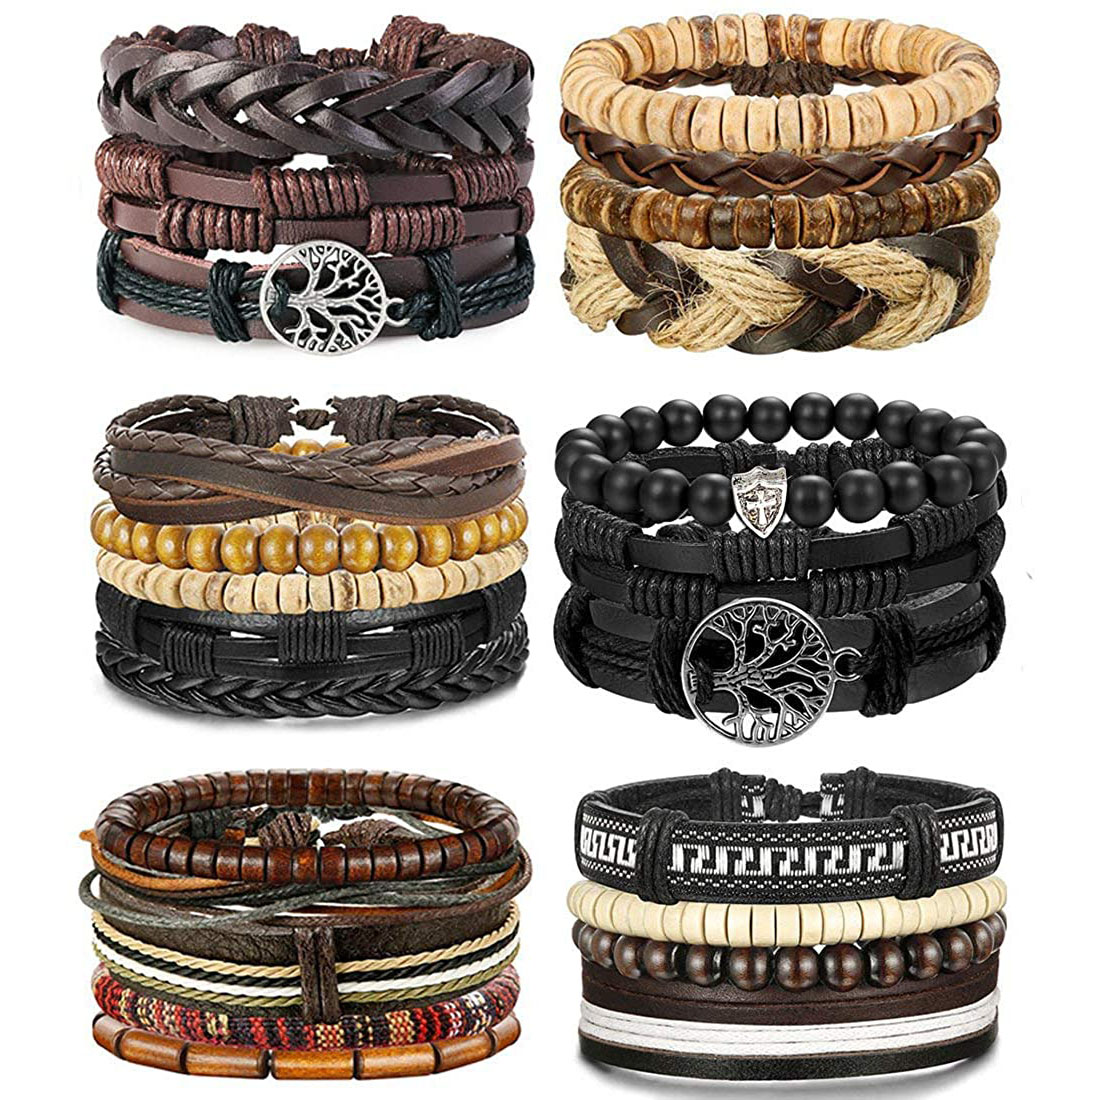 LOLIAS 24 Pcs Woven Leather Bracelet